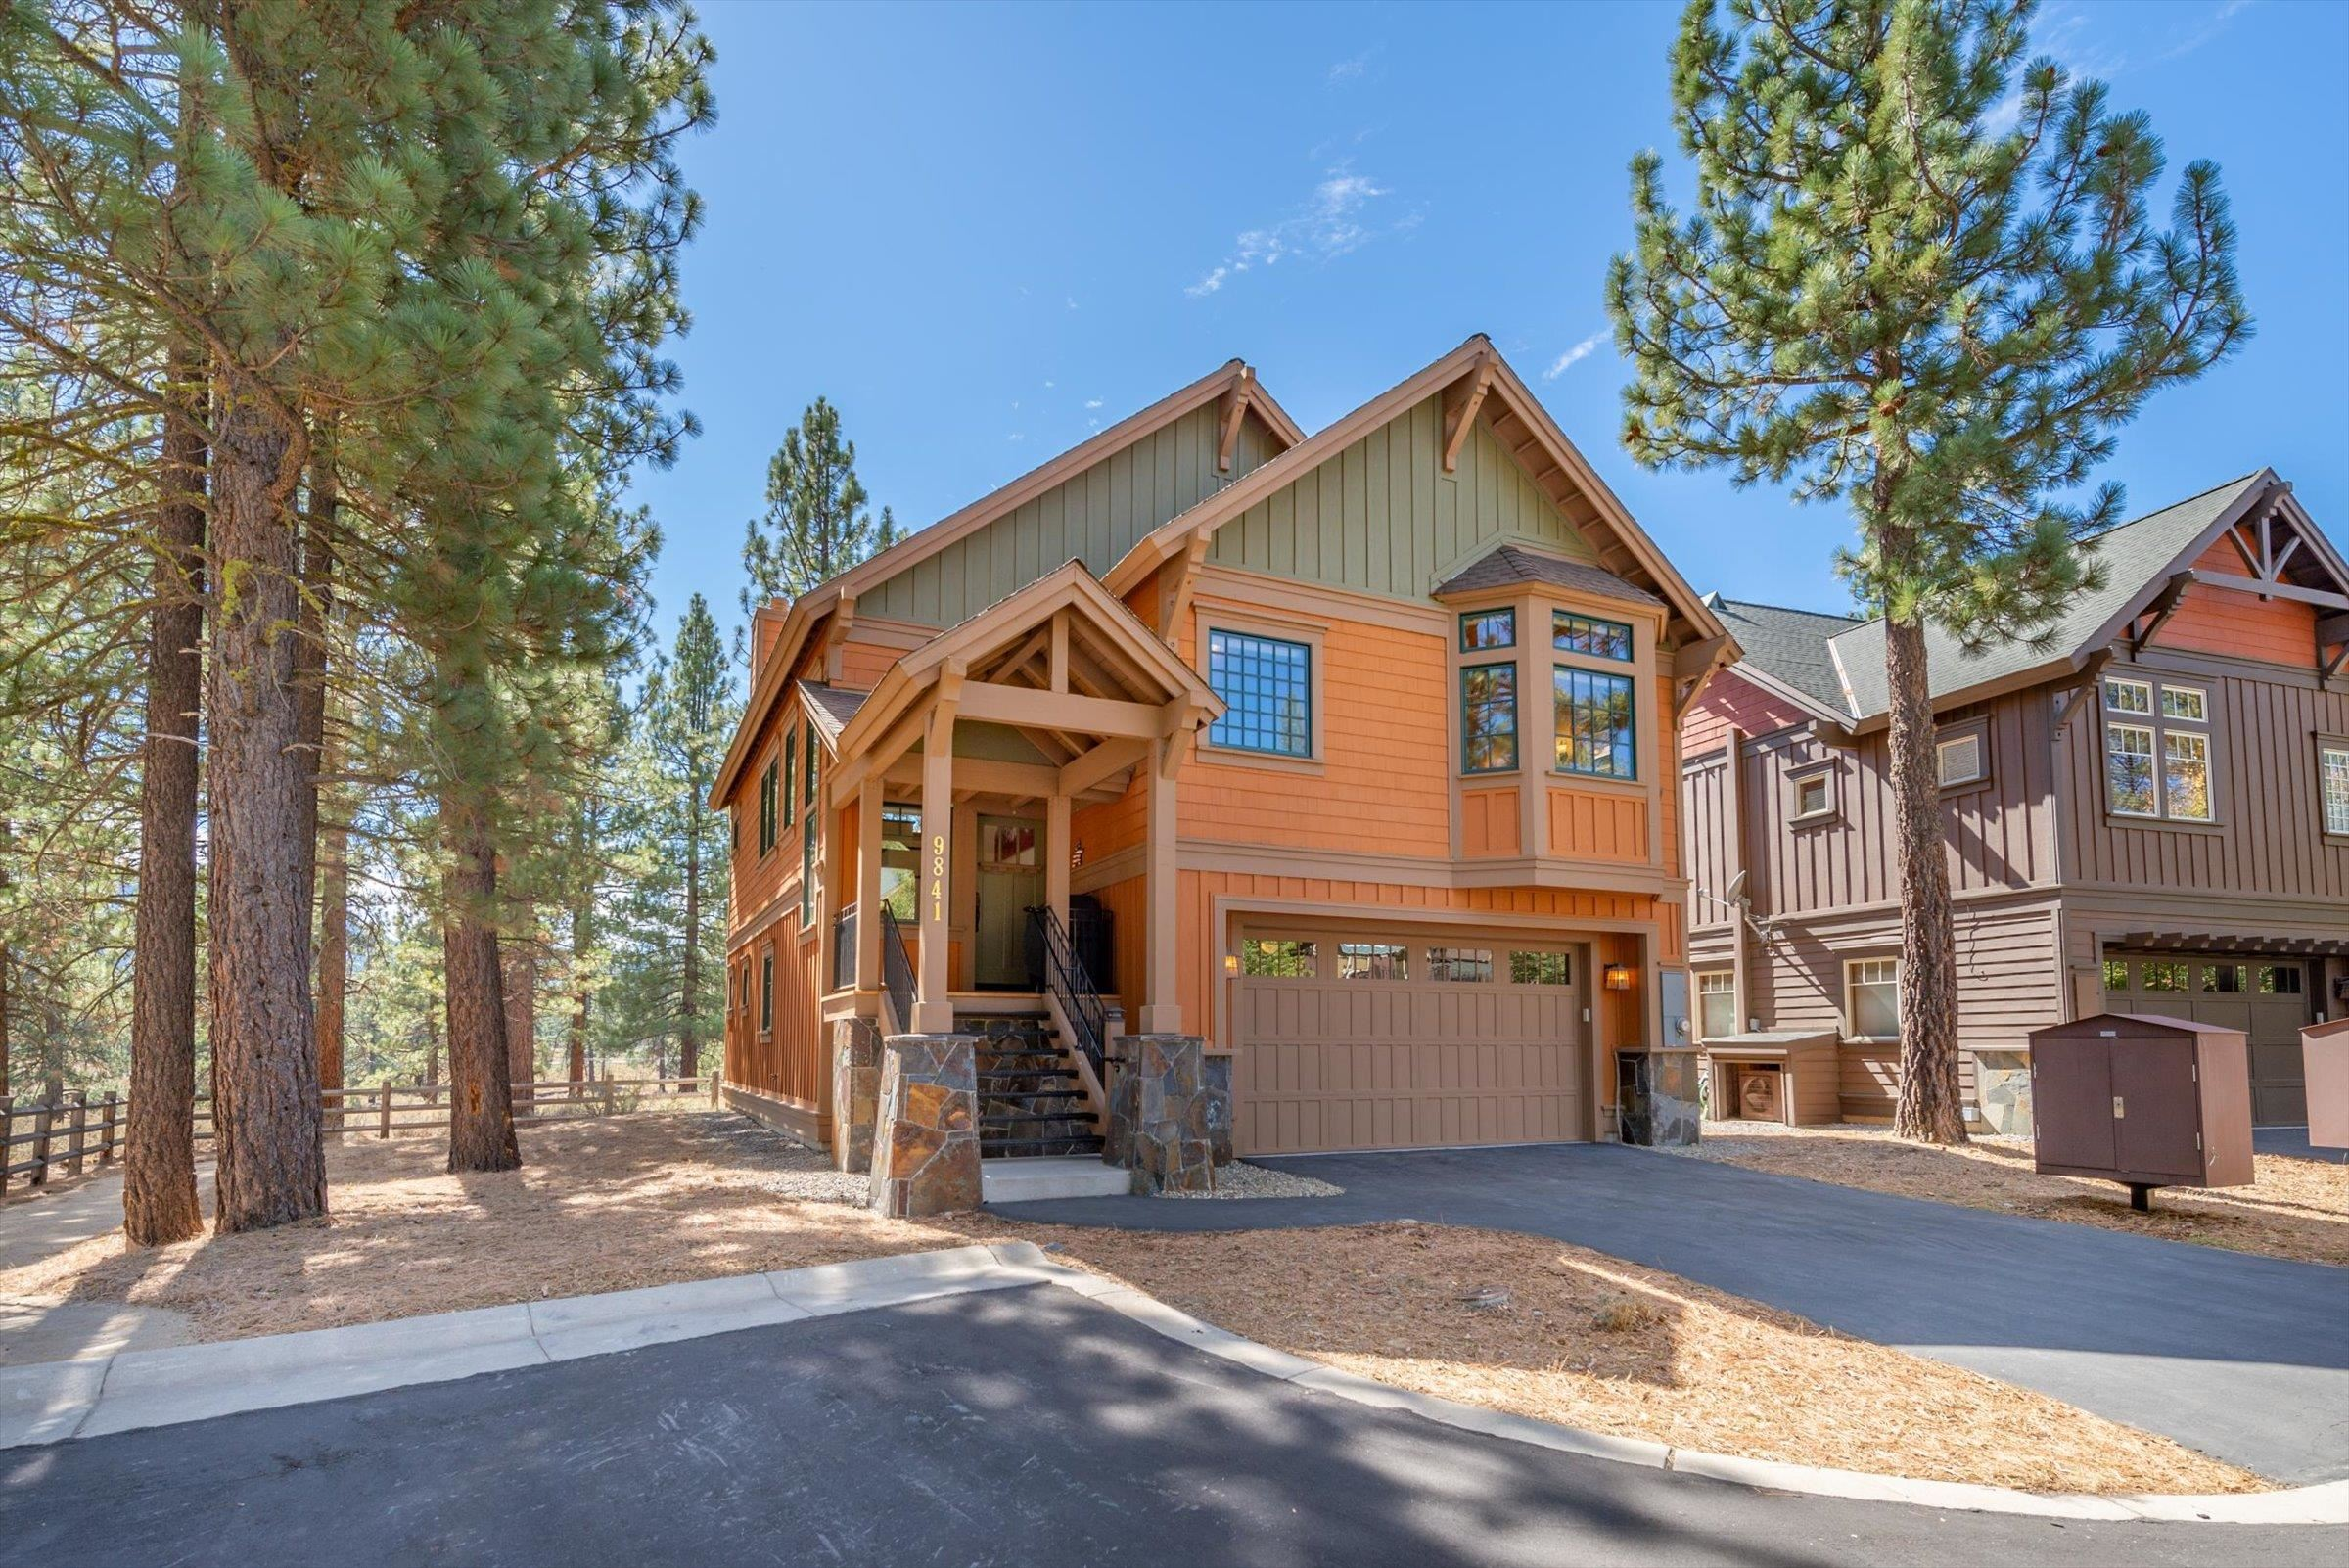 Image for 9841 Brittany Place, Truckee, CA 96161